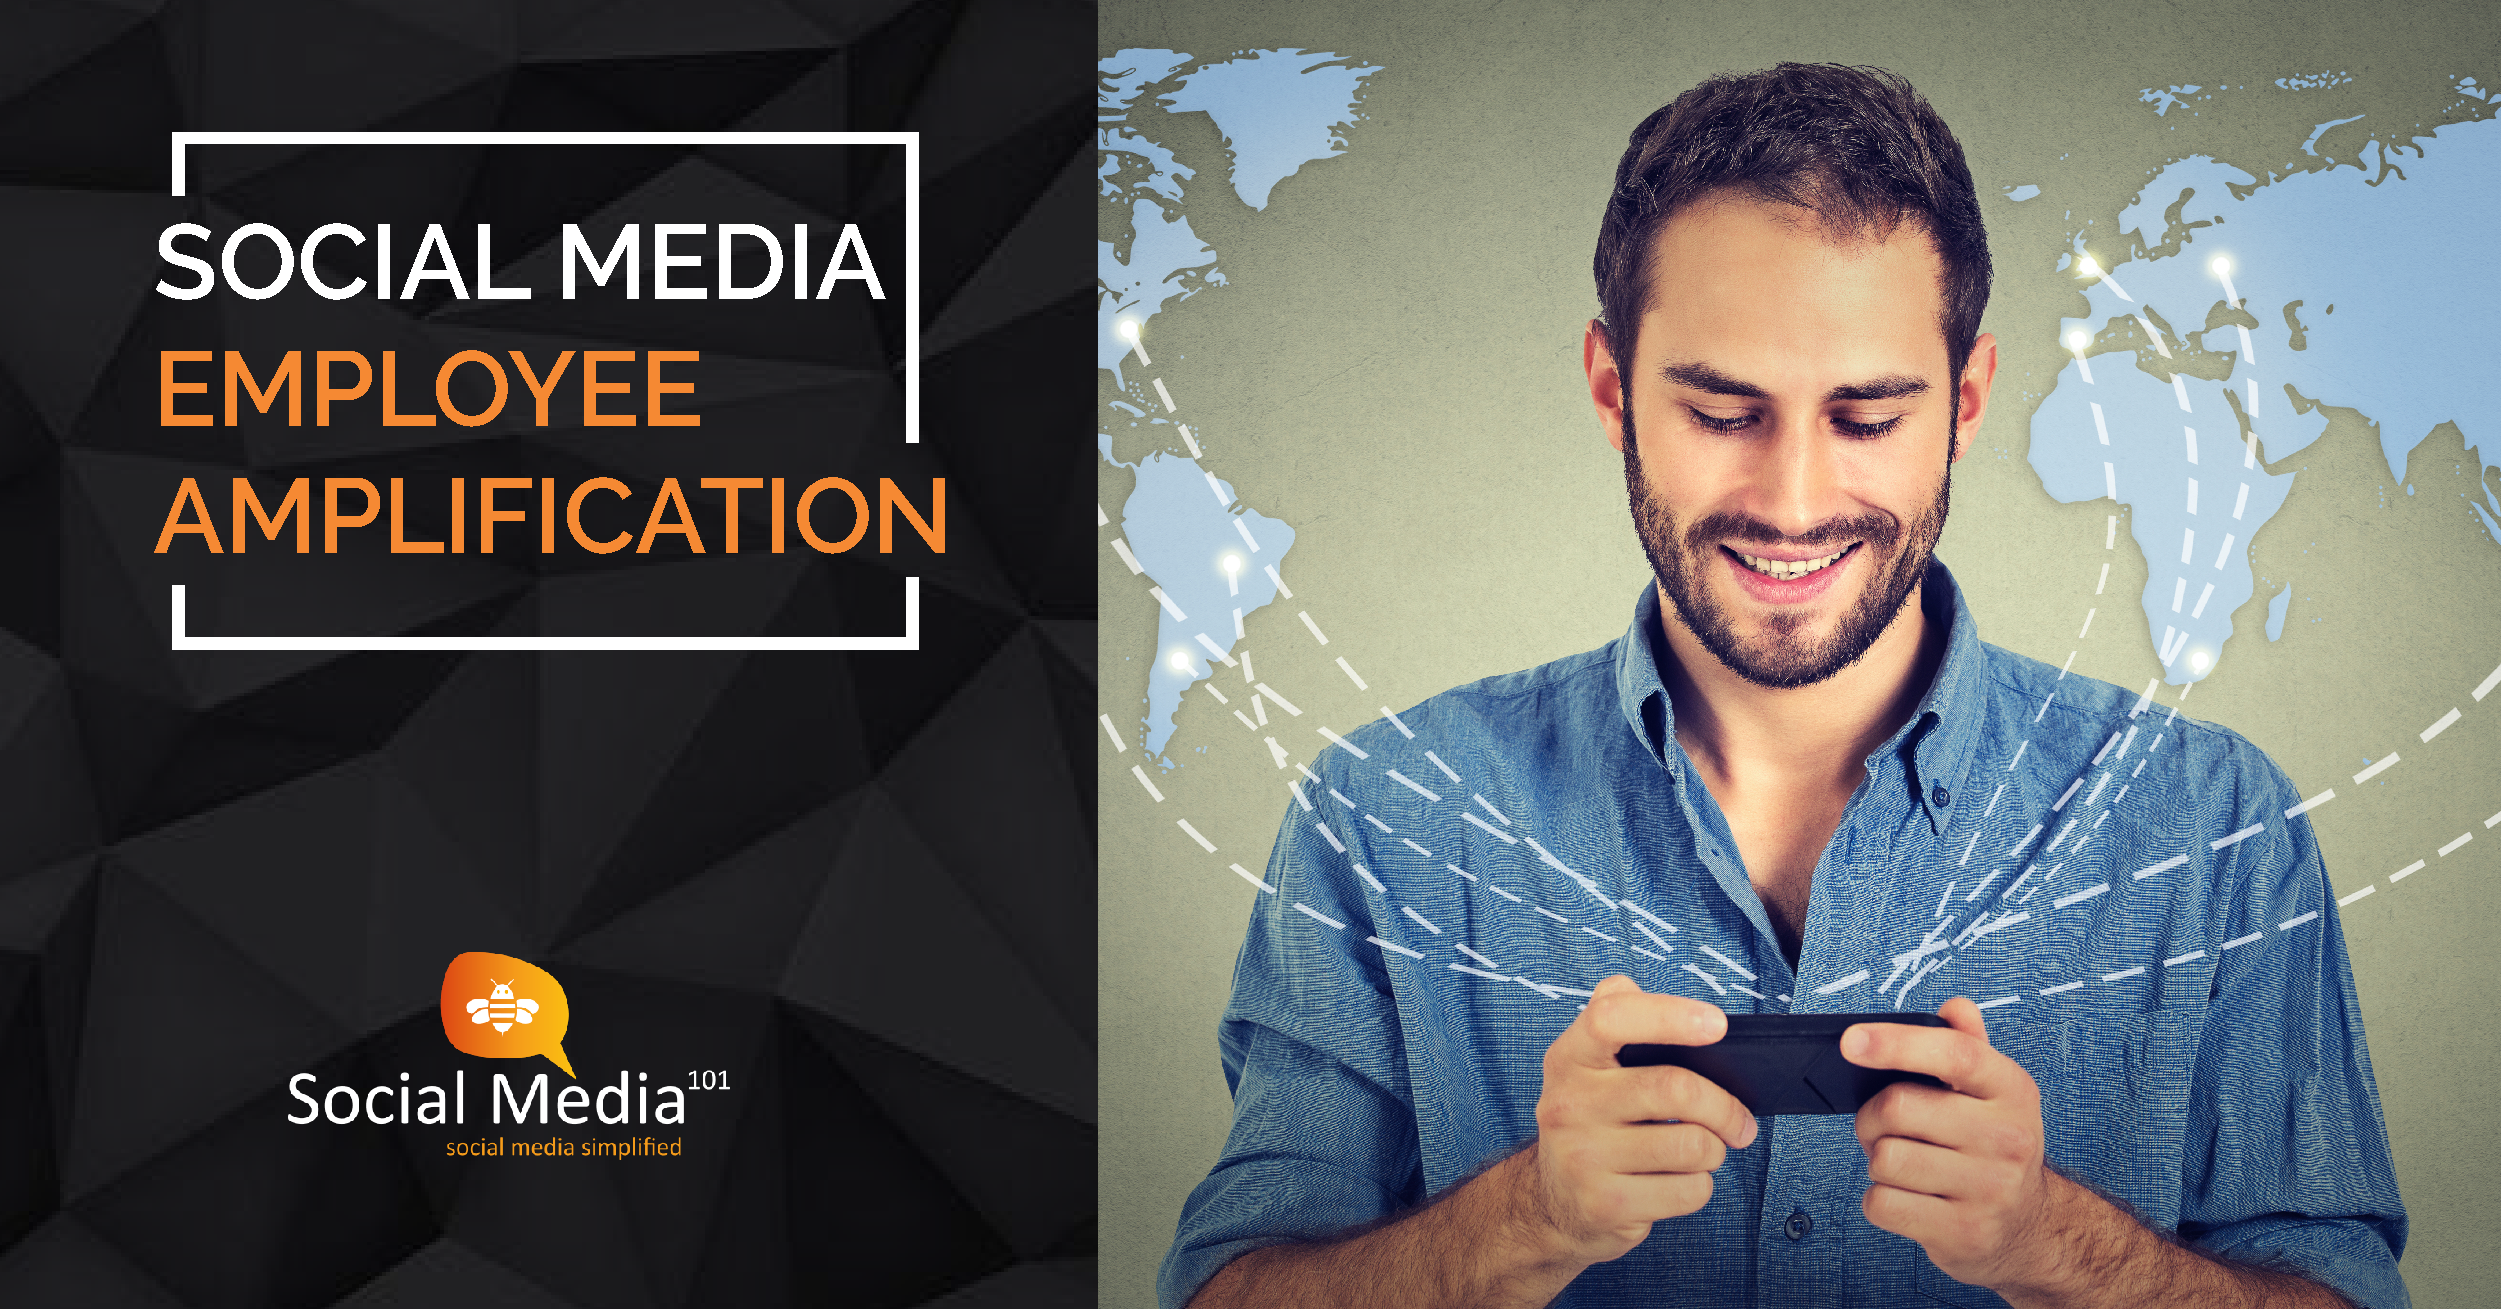 Social Media Employee Amplification – A Concise Guide [With Stats]